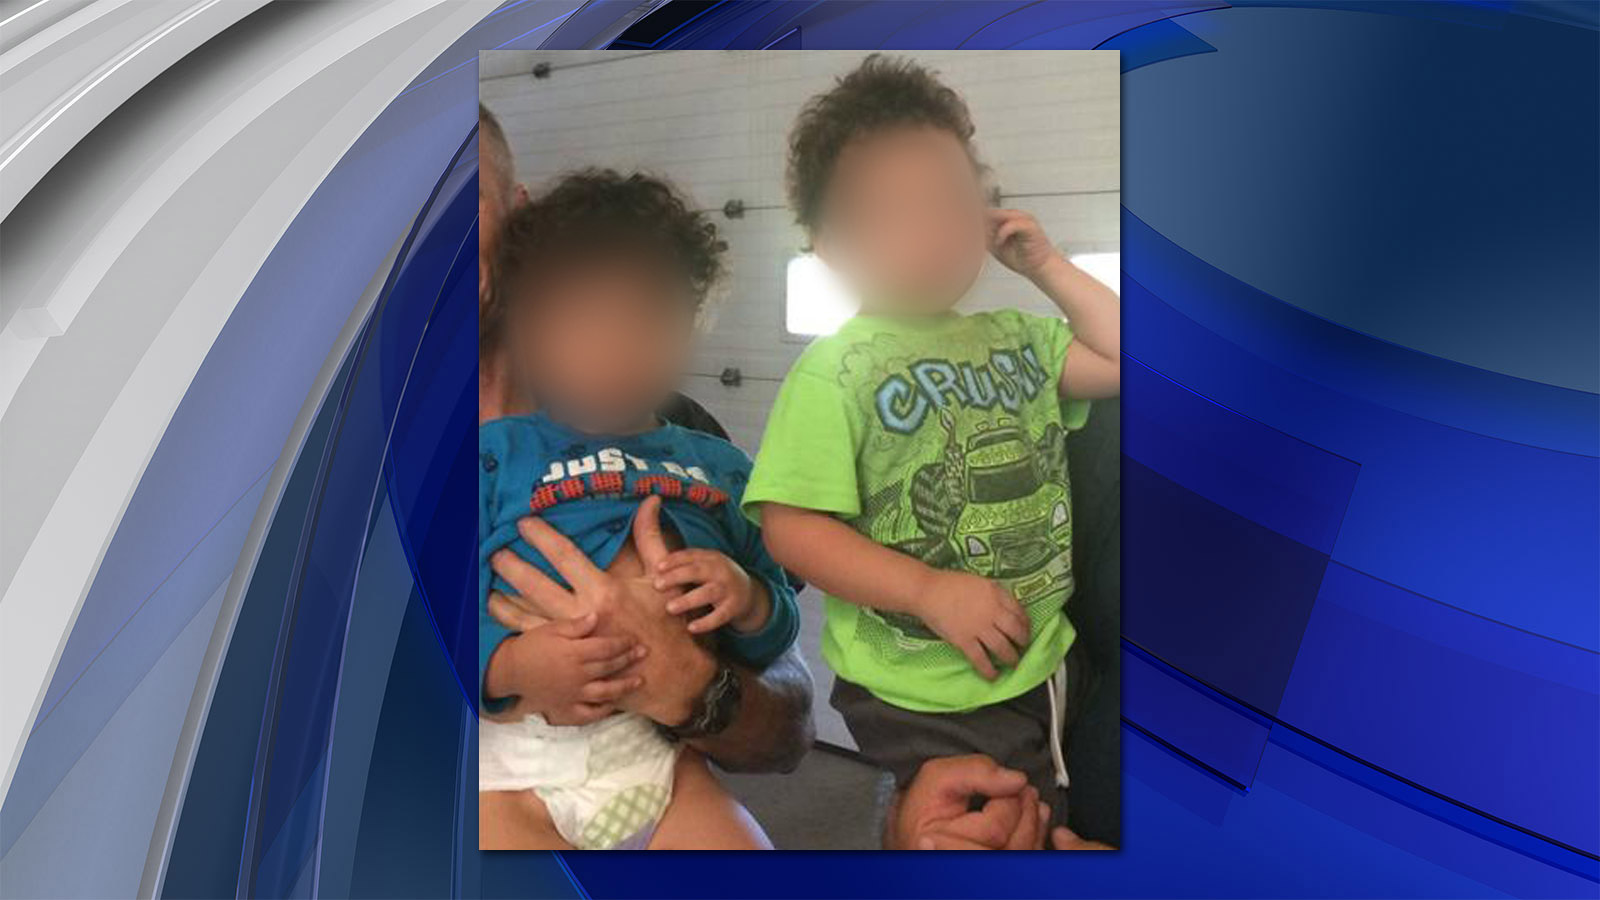 Missing boys in Jefferson County (credit: CBS)